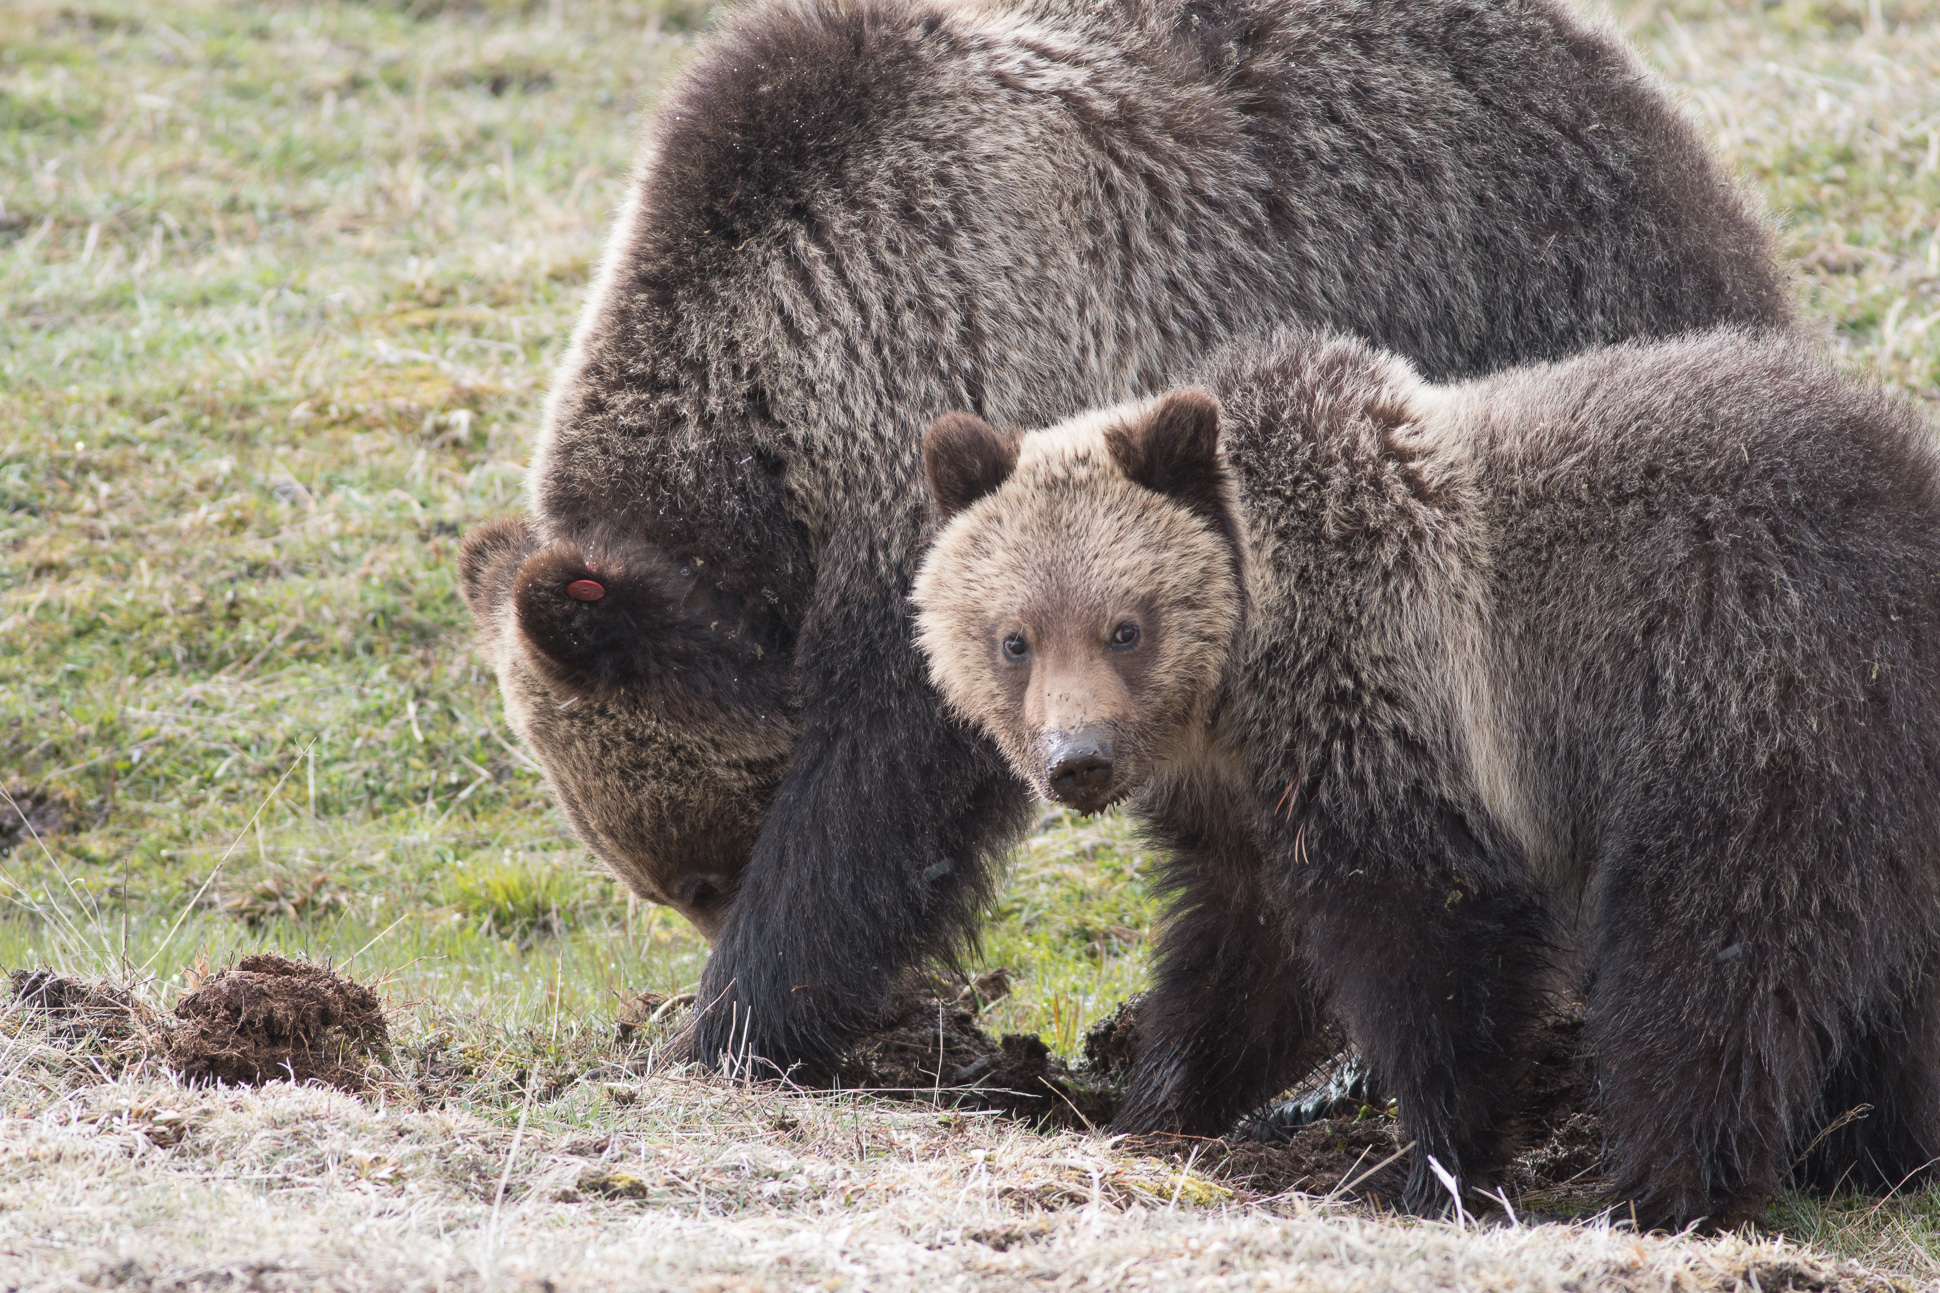 Grizzly Bear and cub Valley Girl near Roaring Mountain Yellowstone National Park WY-05818